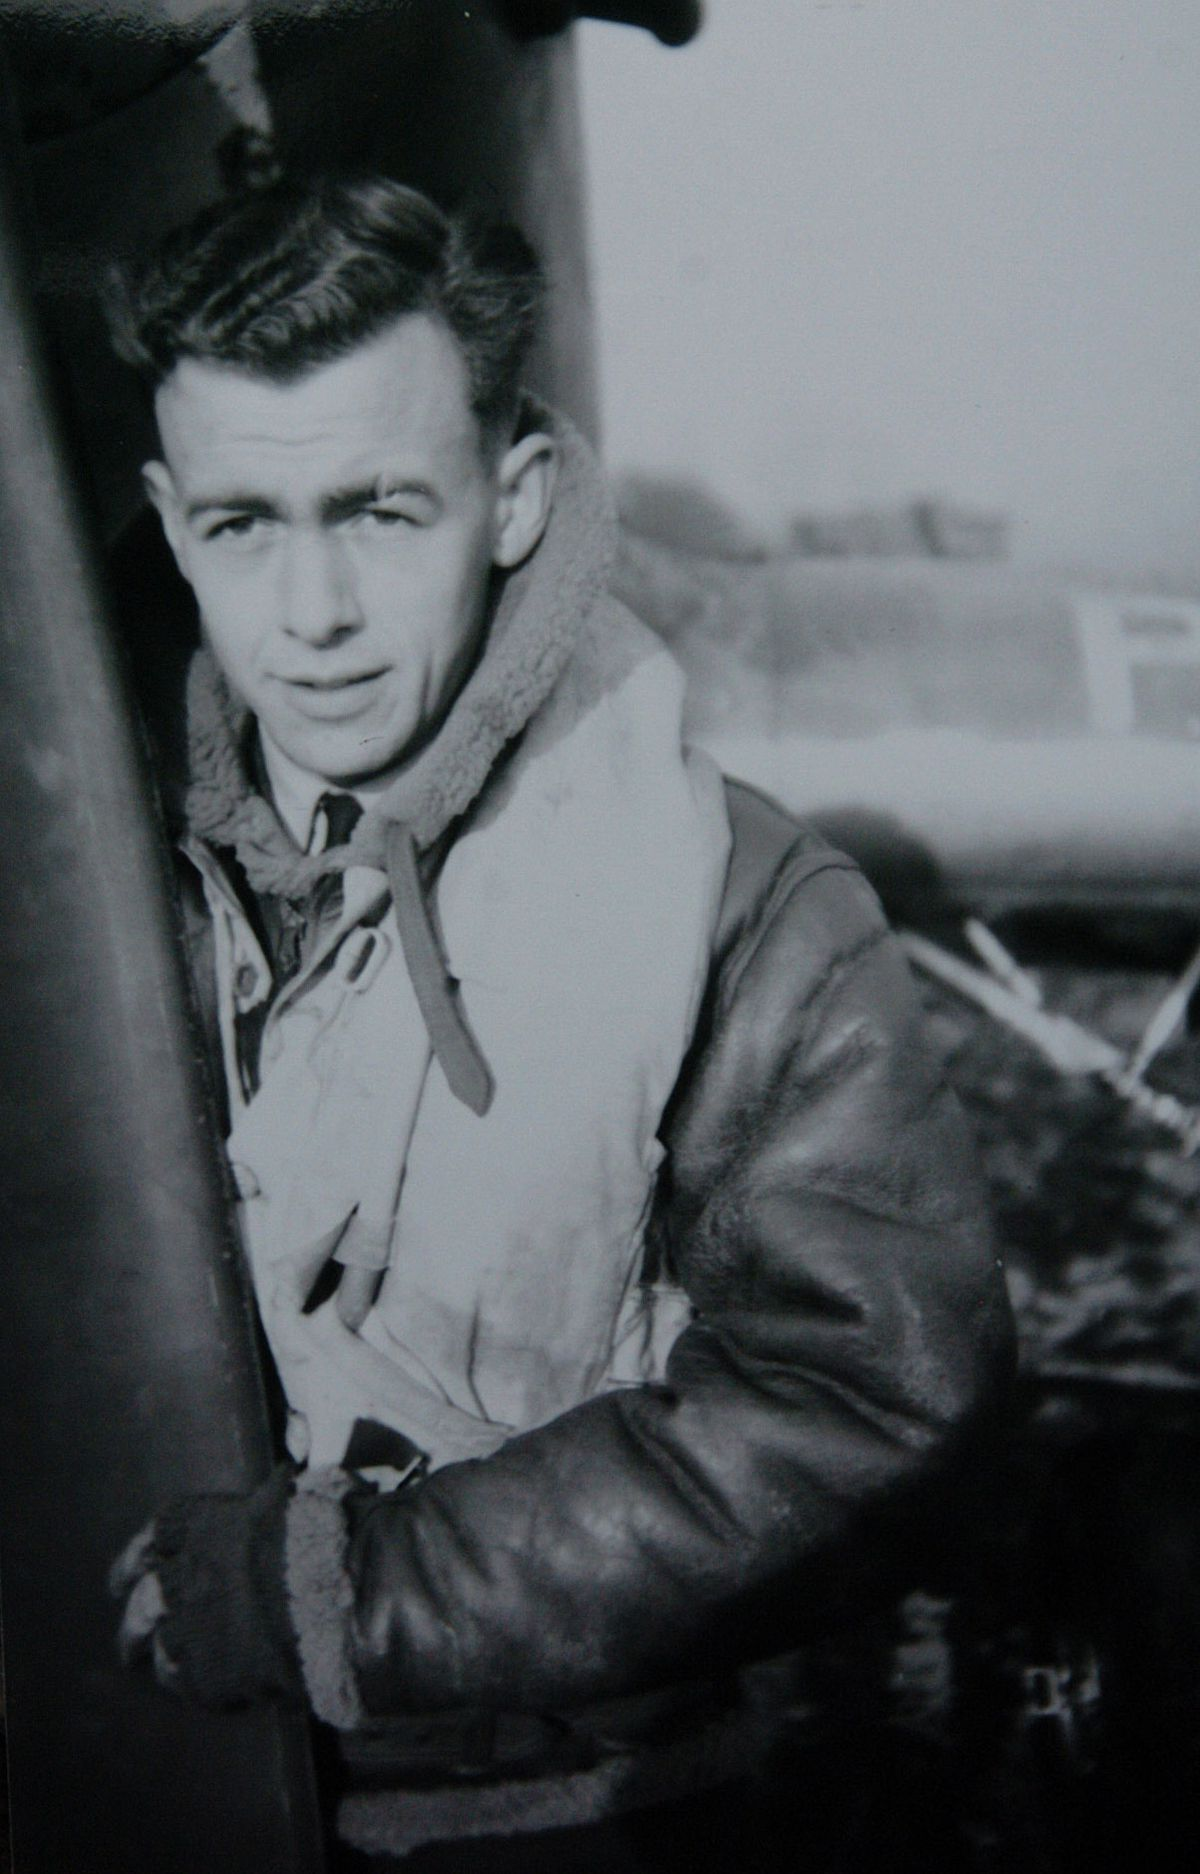 The young pilot